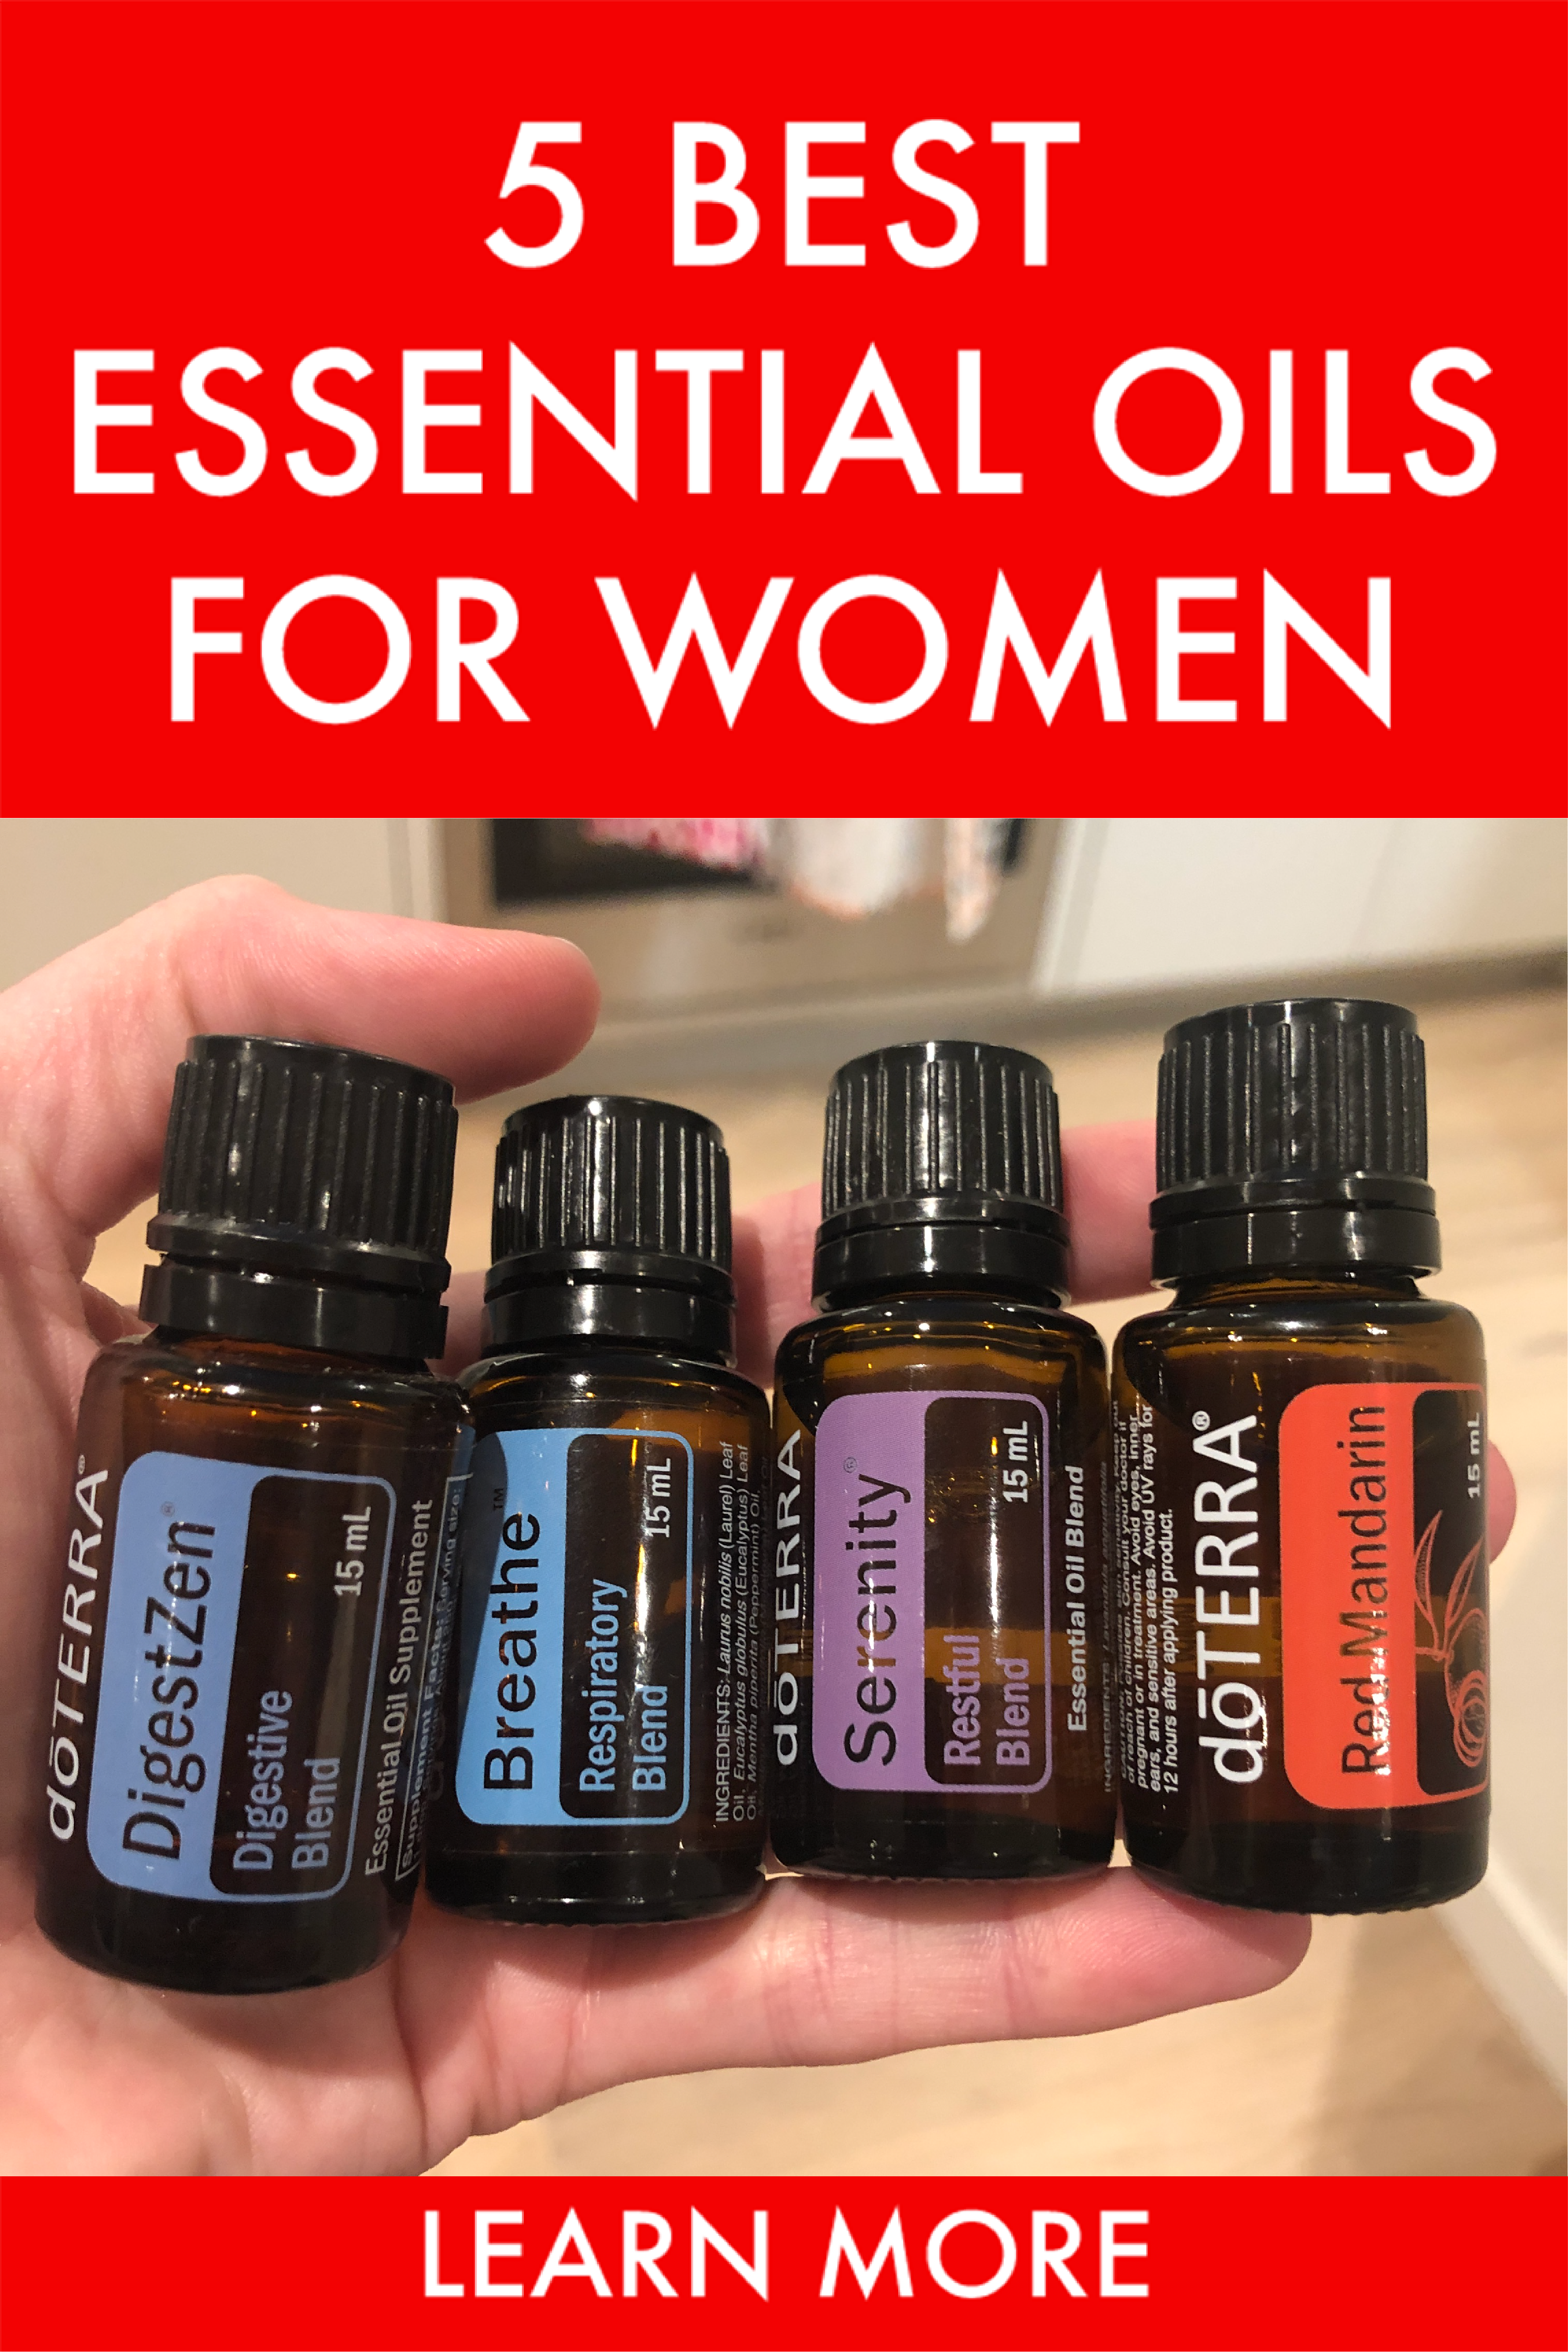 We tested EVERYTHING from DOTERRA to YOUNG LIVING to find